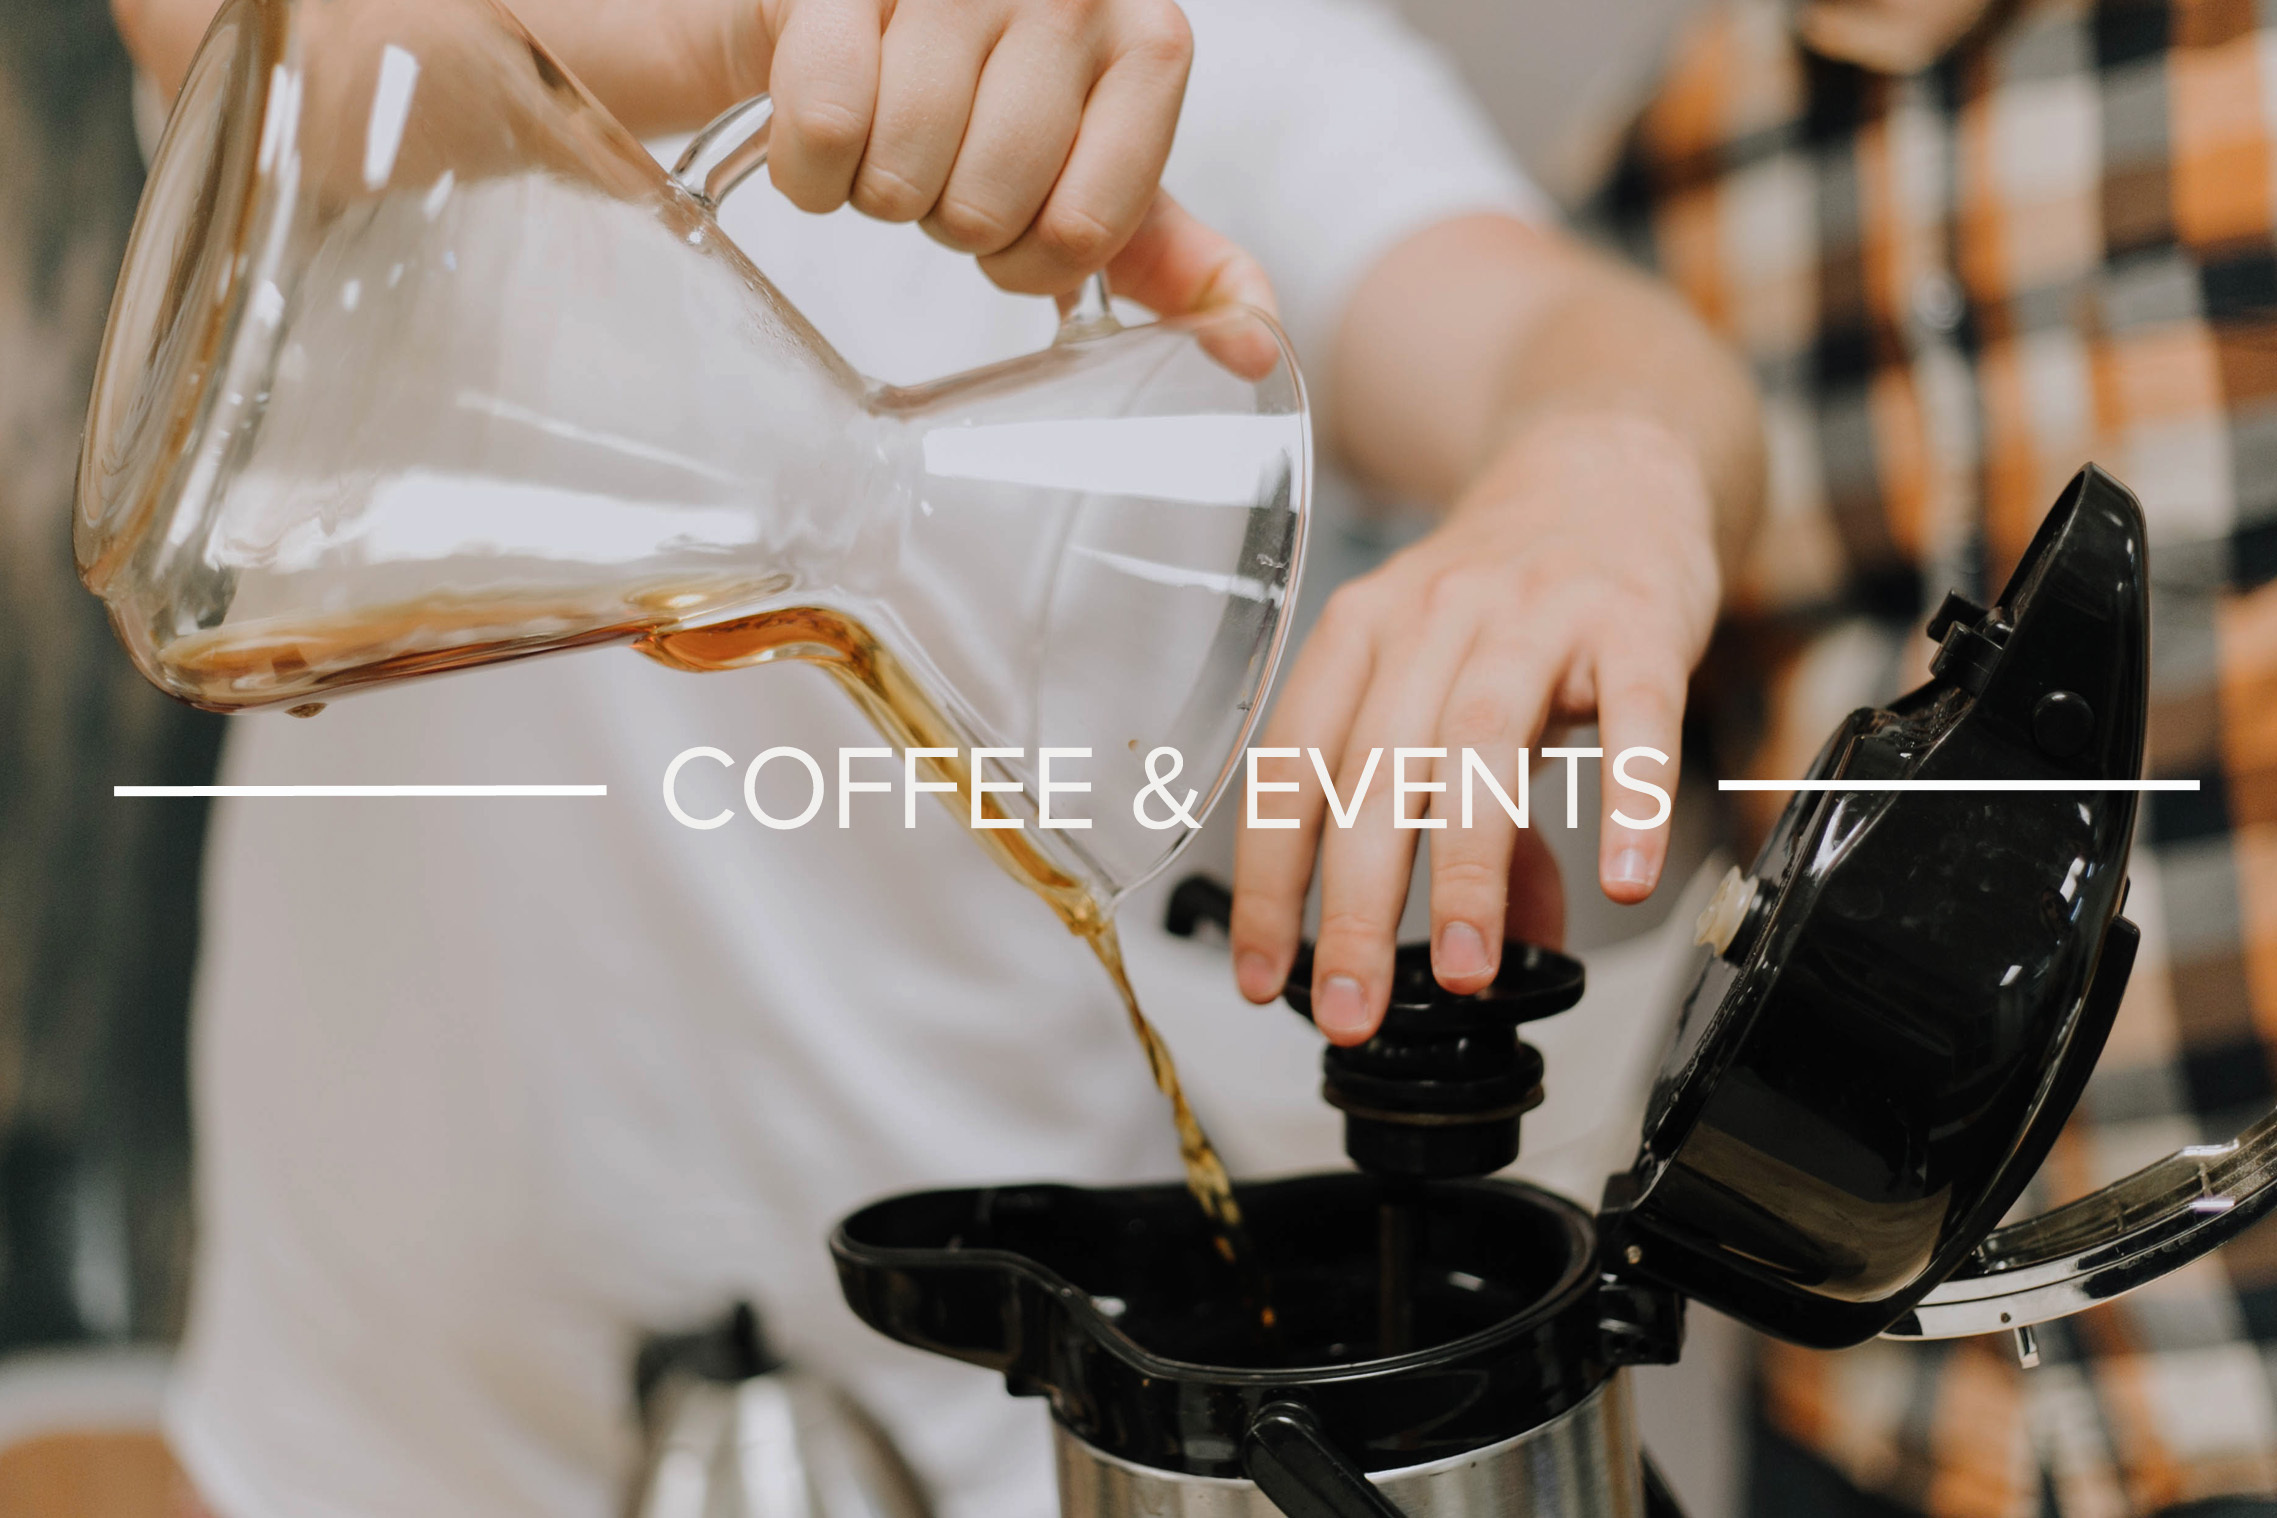 COFFEE & EVENTS - The coffee and events team has the responsibility of making sure we have incredible coffee at each of our weekend services.